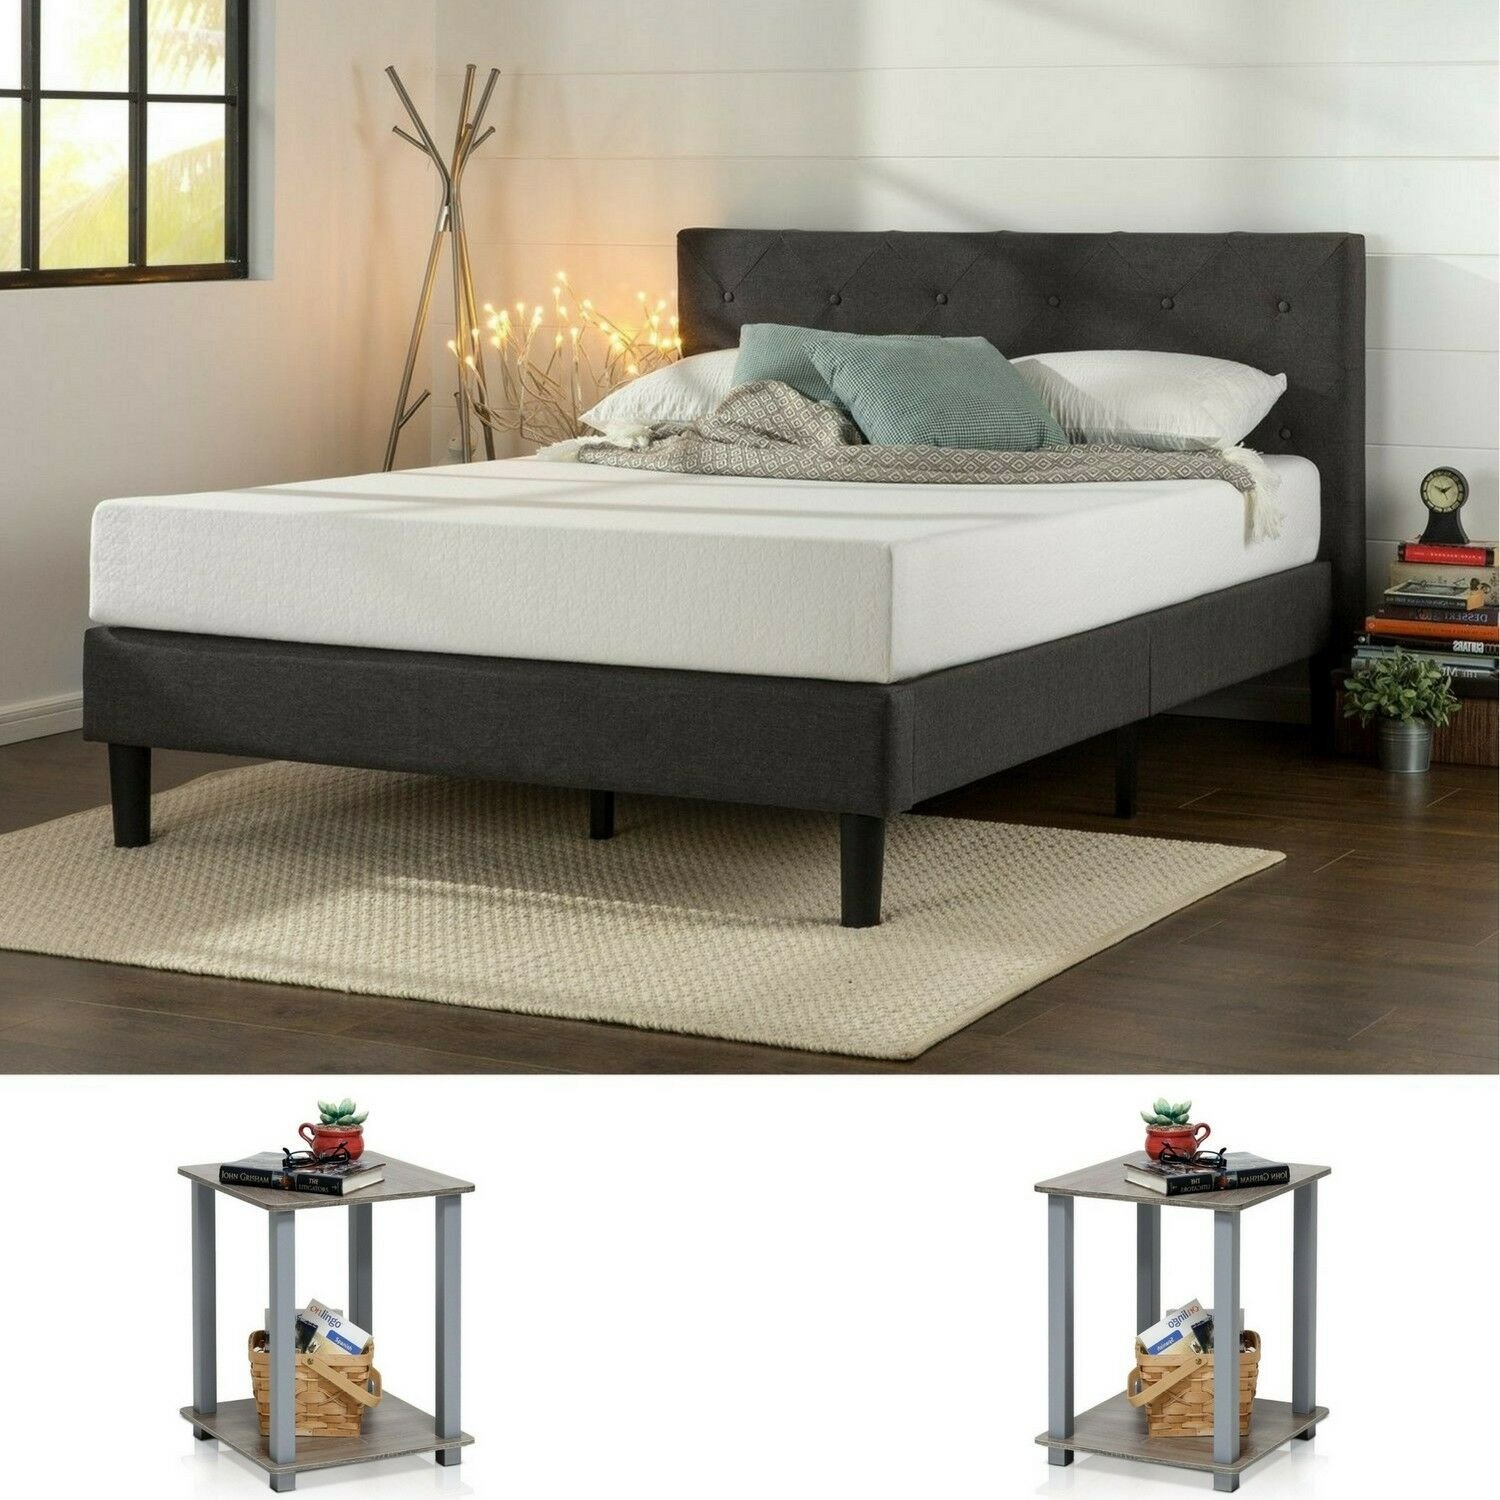 Ashley Furniture Queen Size Bedroom Set Beautiful Bedroom Set Queen Size Modern Design Furniture 2 Nightstand Tables Grey 3 Pieces